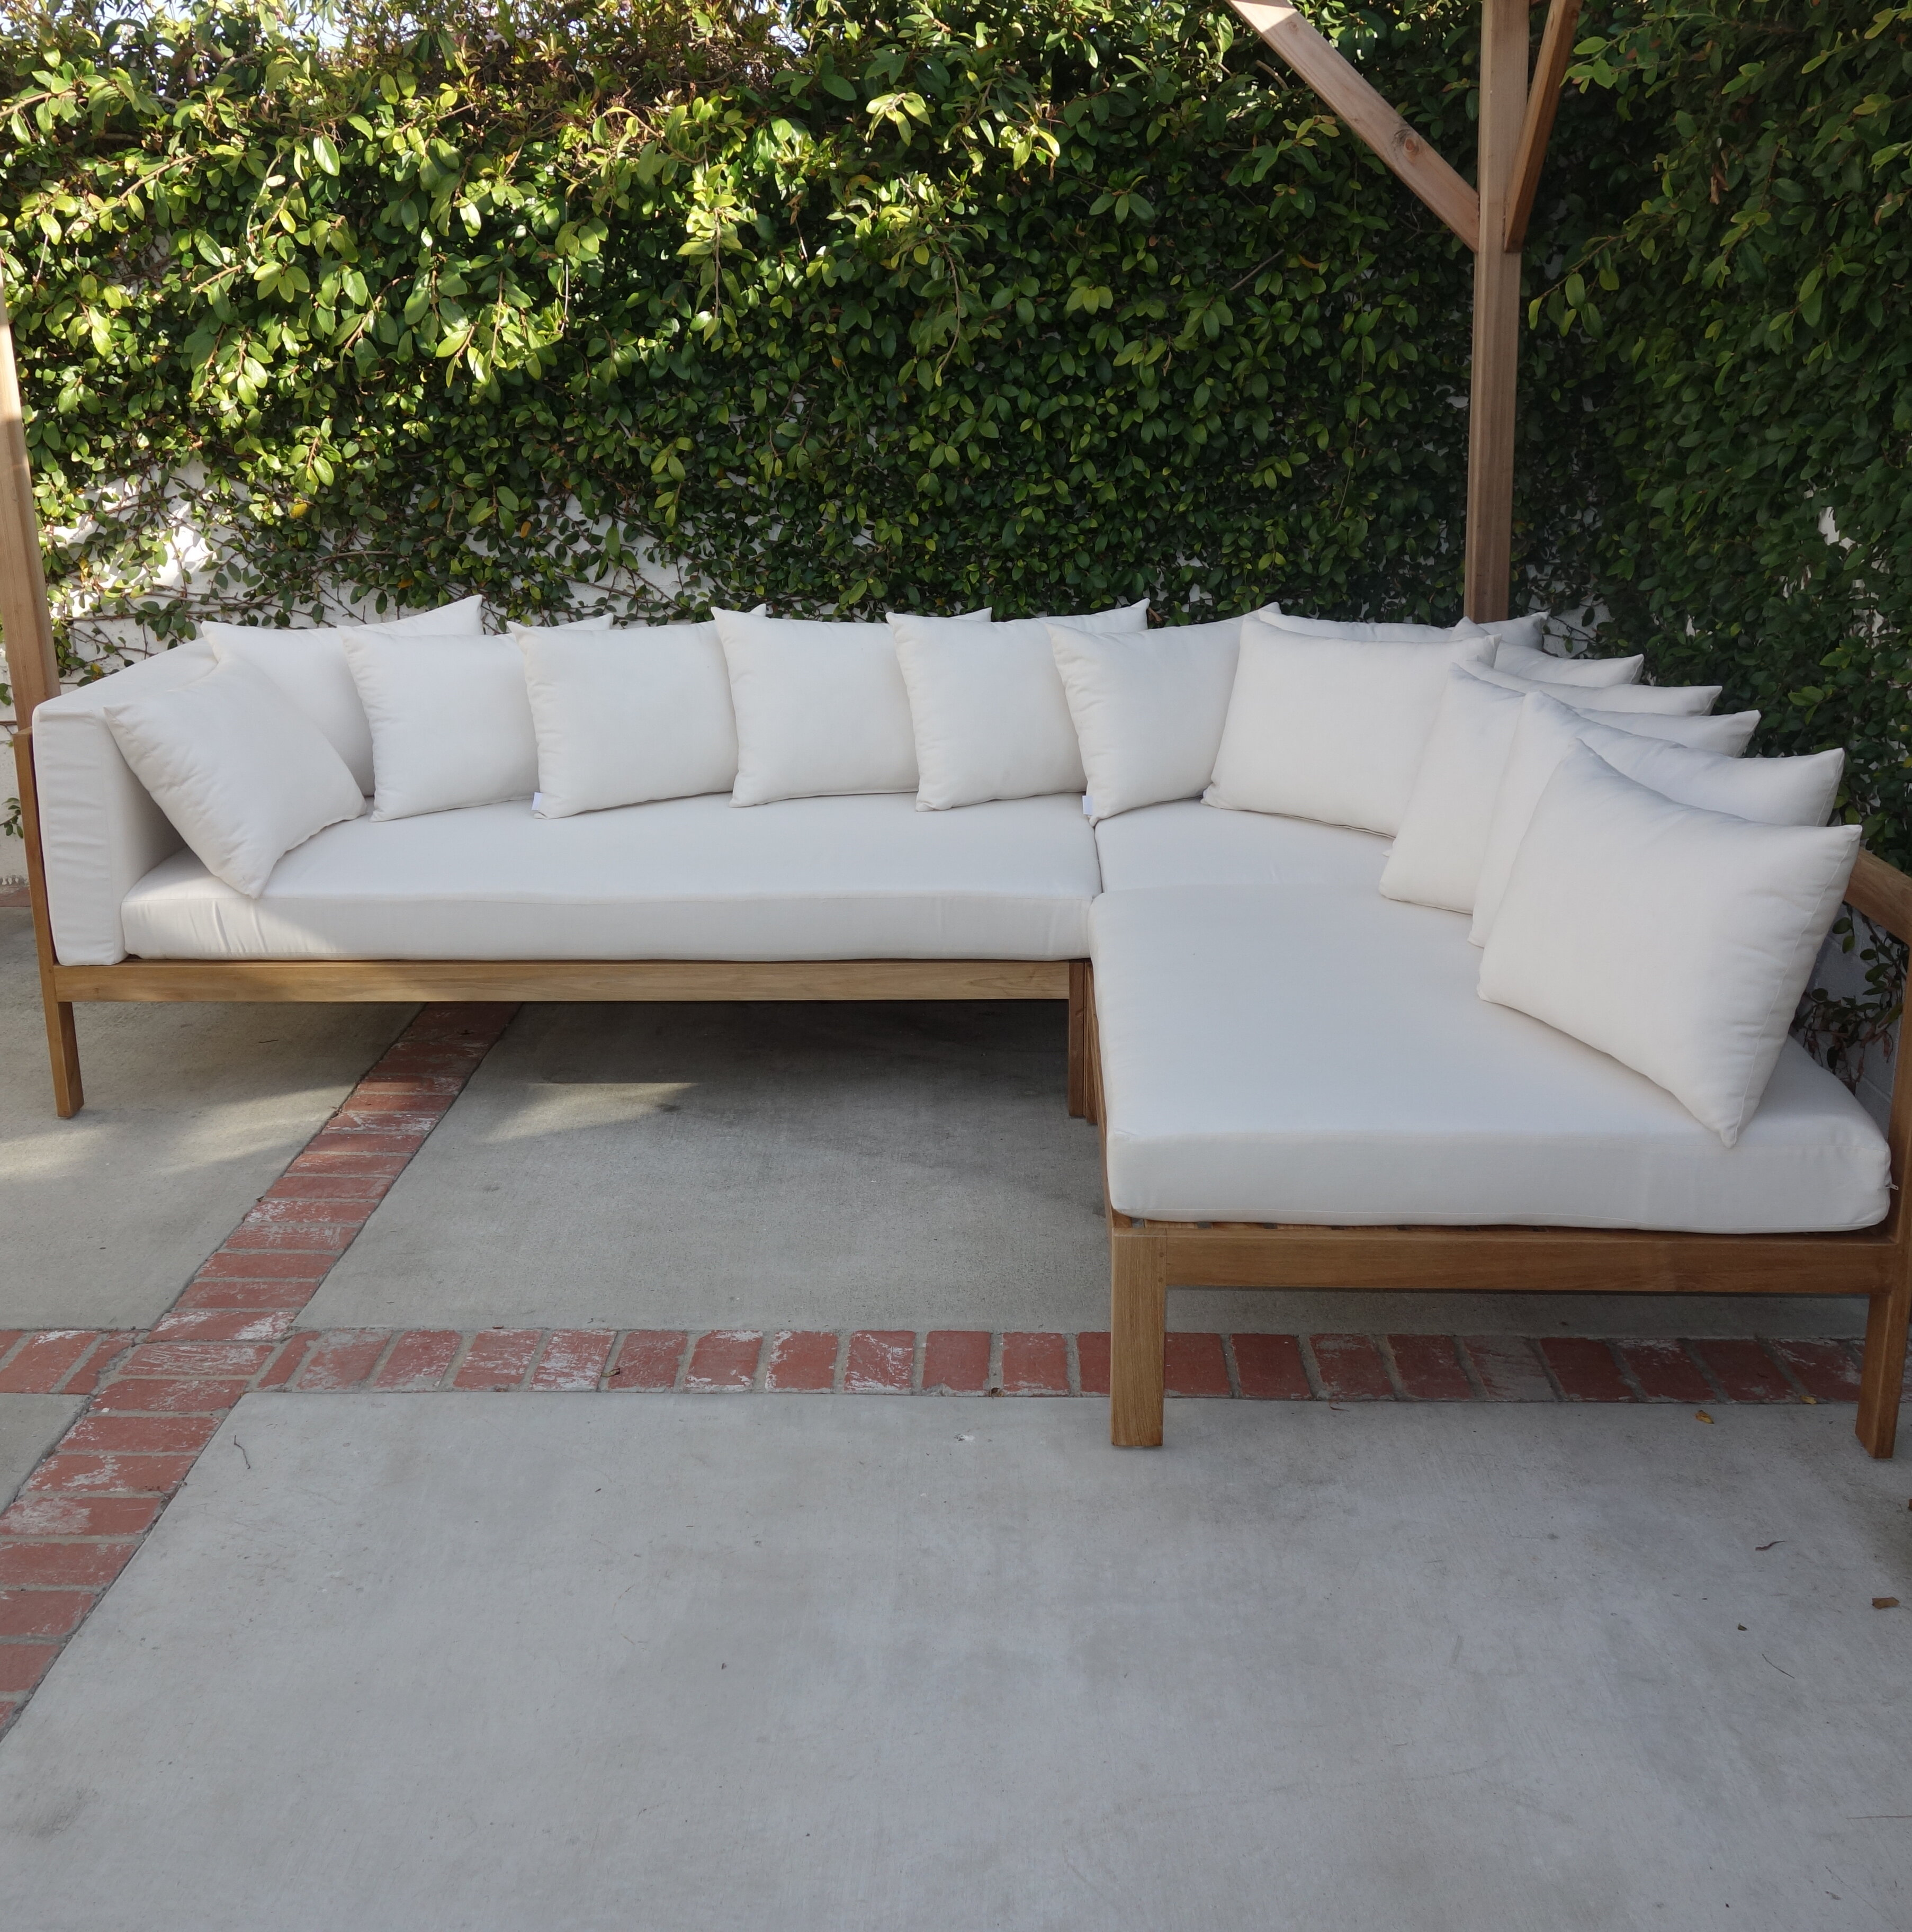 Corrigan Studio Jerrie Patio Sectional